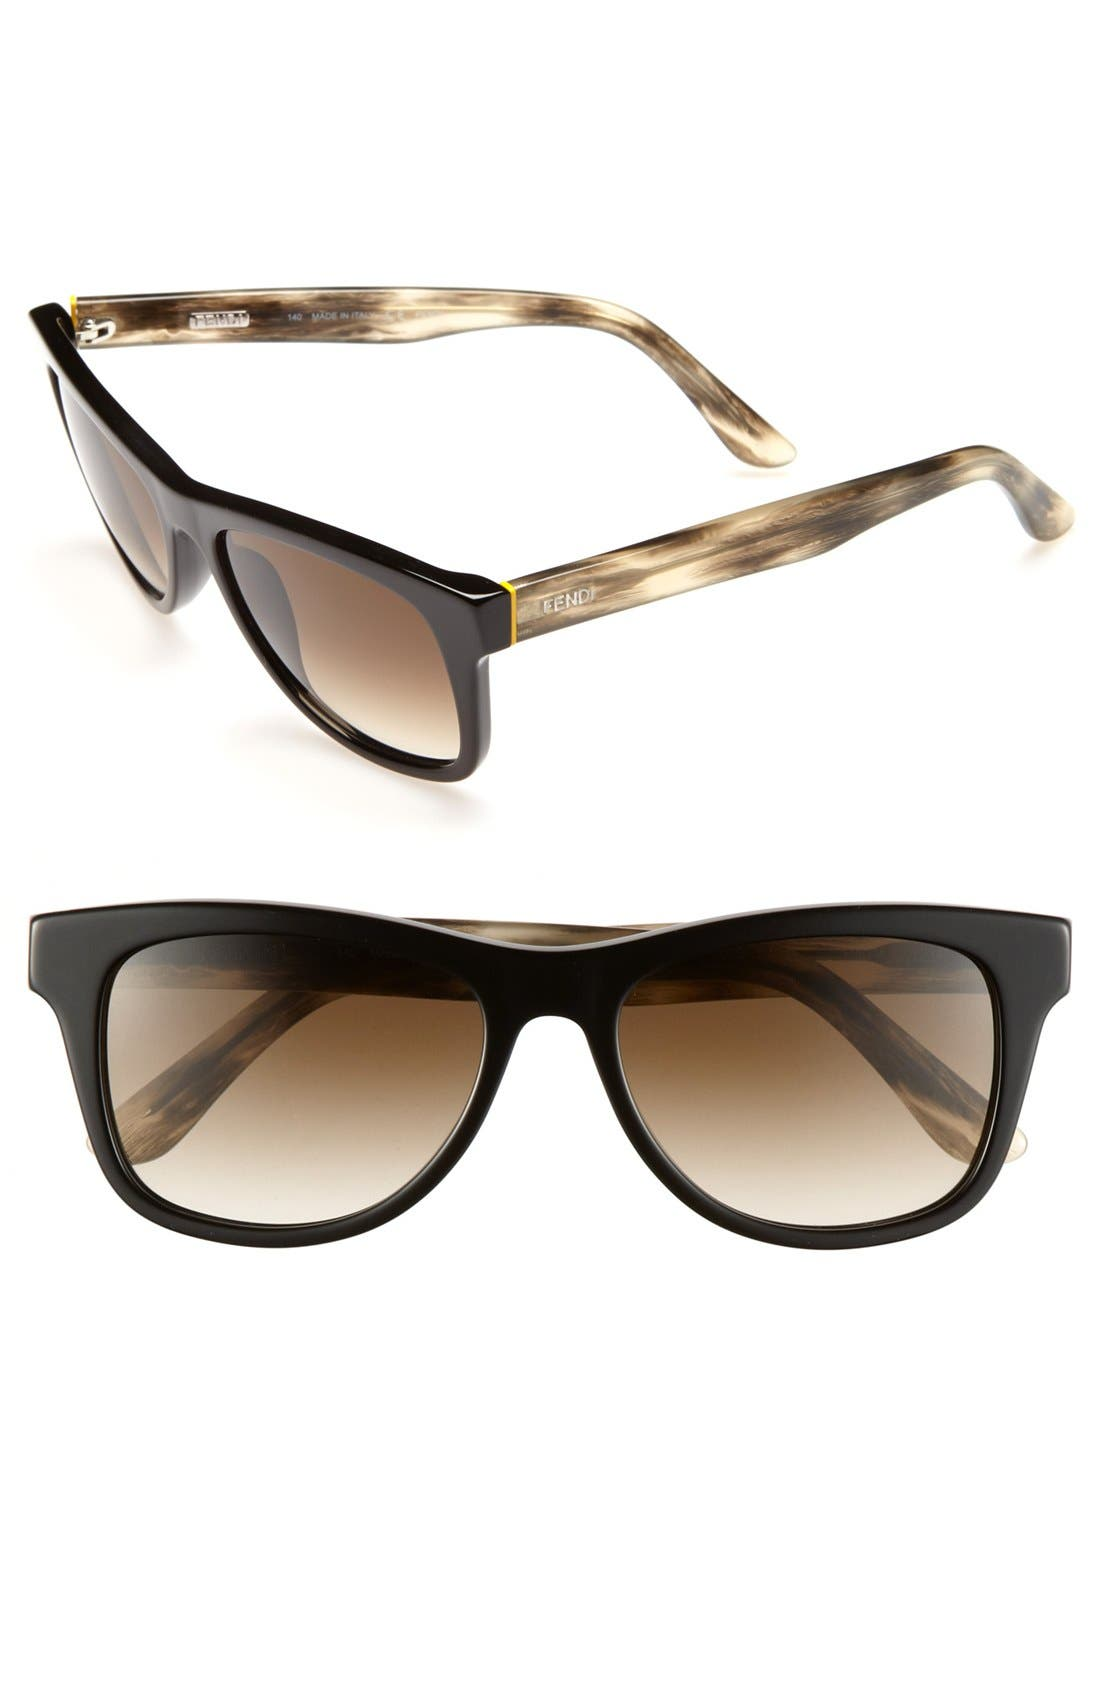 Main Image - Fendi 53mm Retro Sunglasses